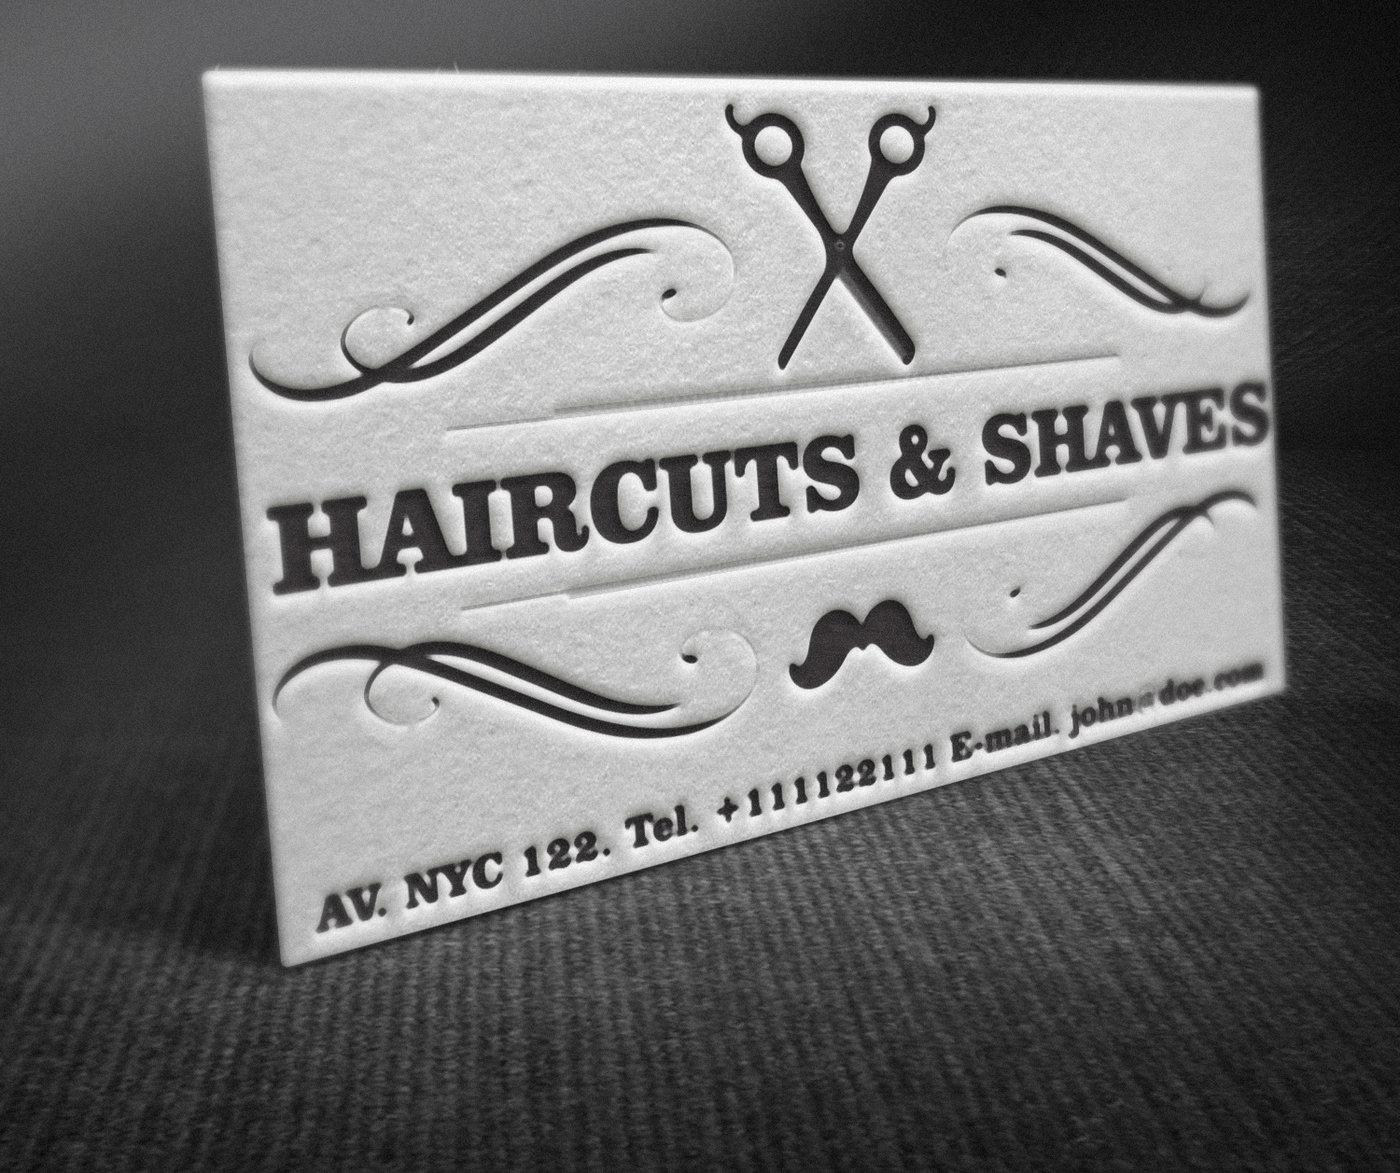 Letterpress barber shop business cards free template by borce share colourmoves